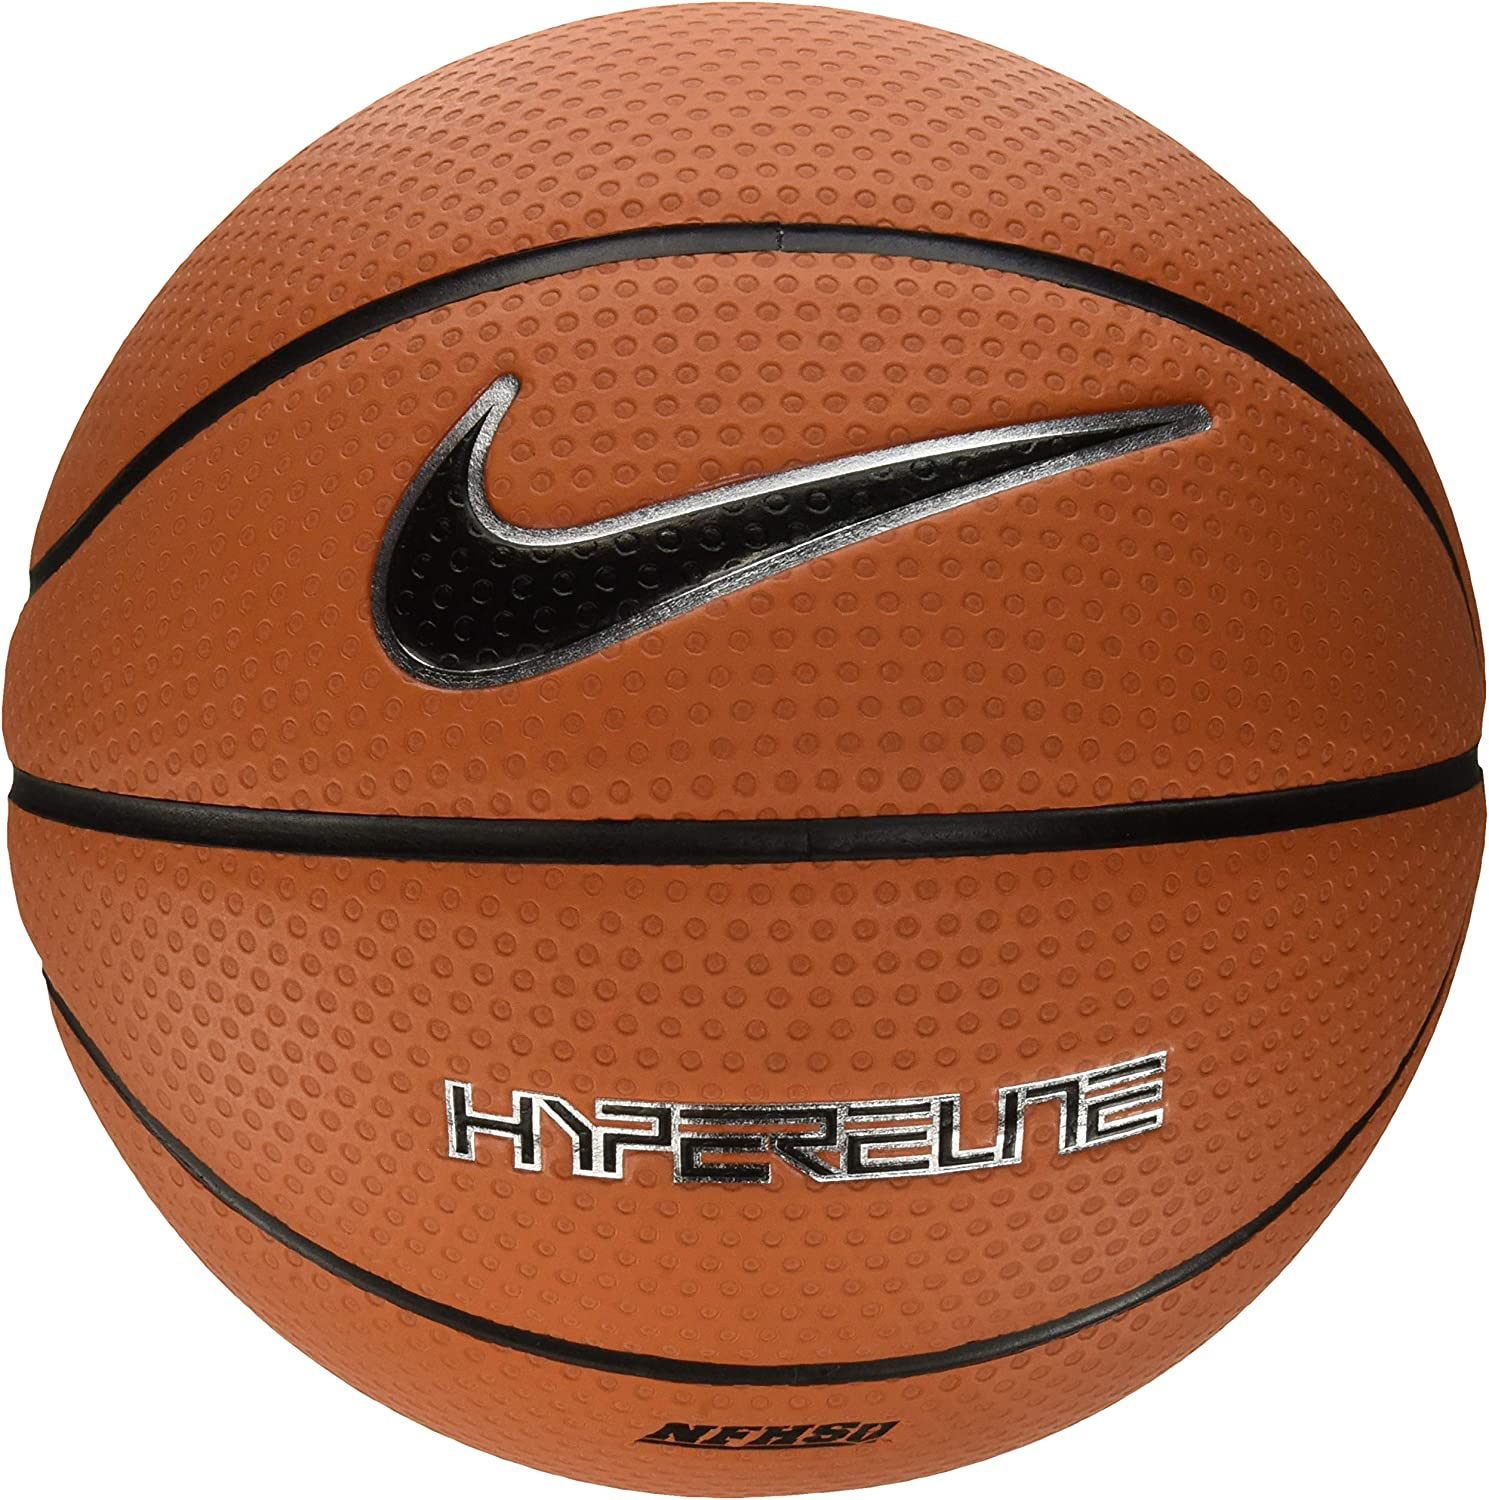 NIKE Hyper Elite Official Basketball (29.5)